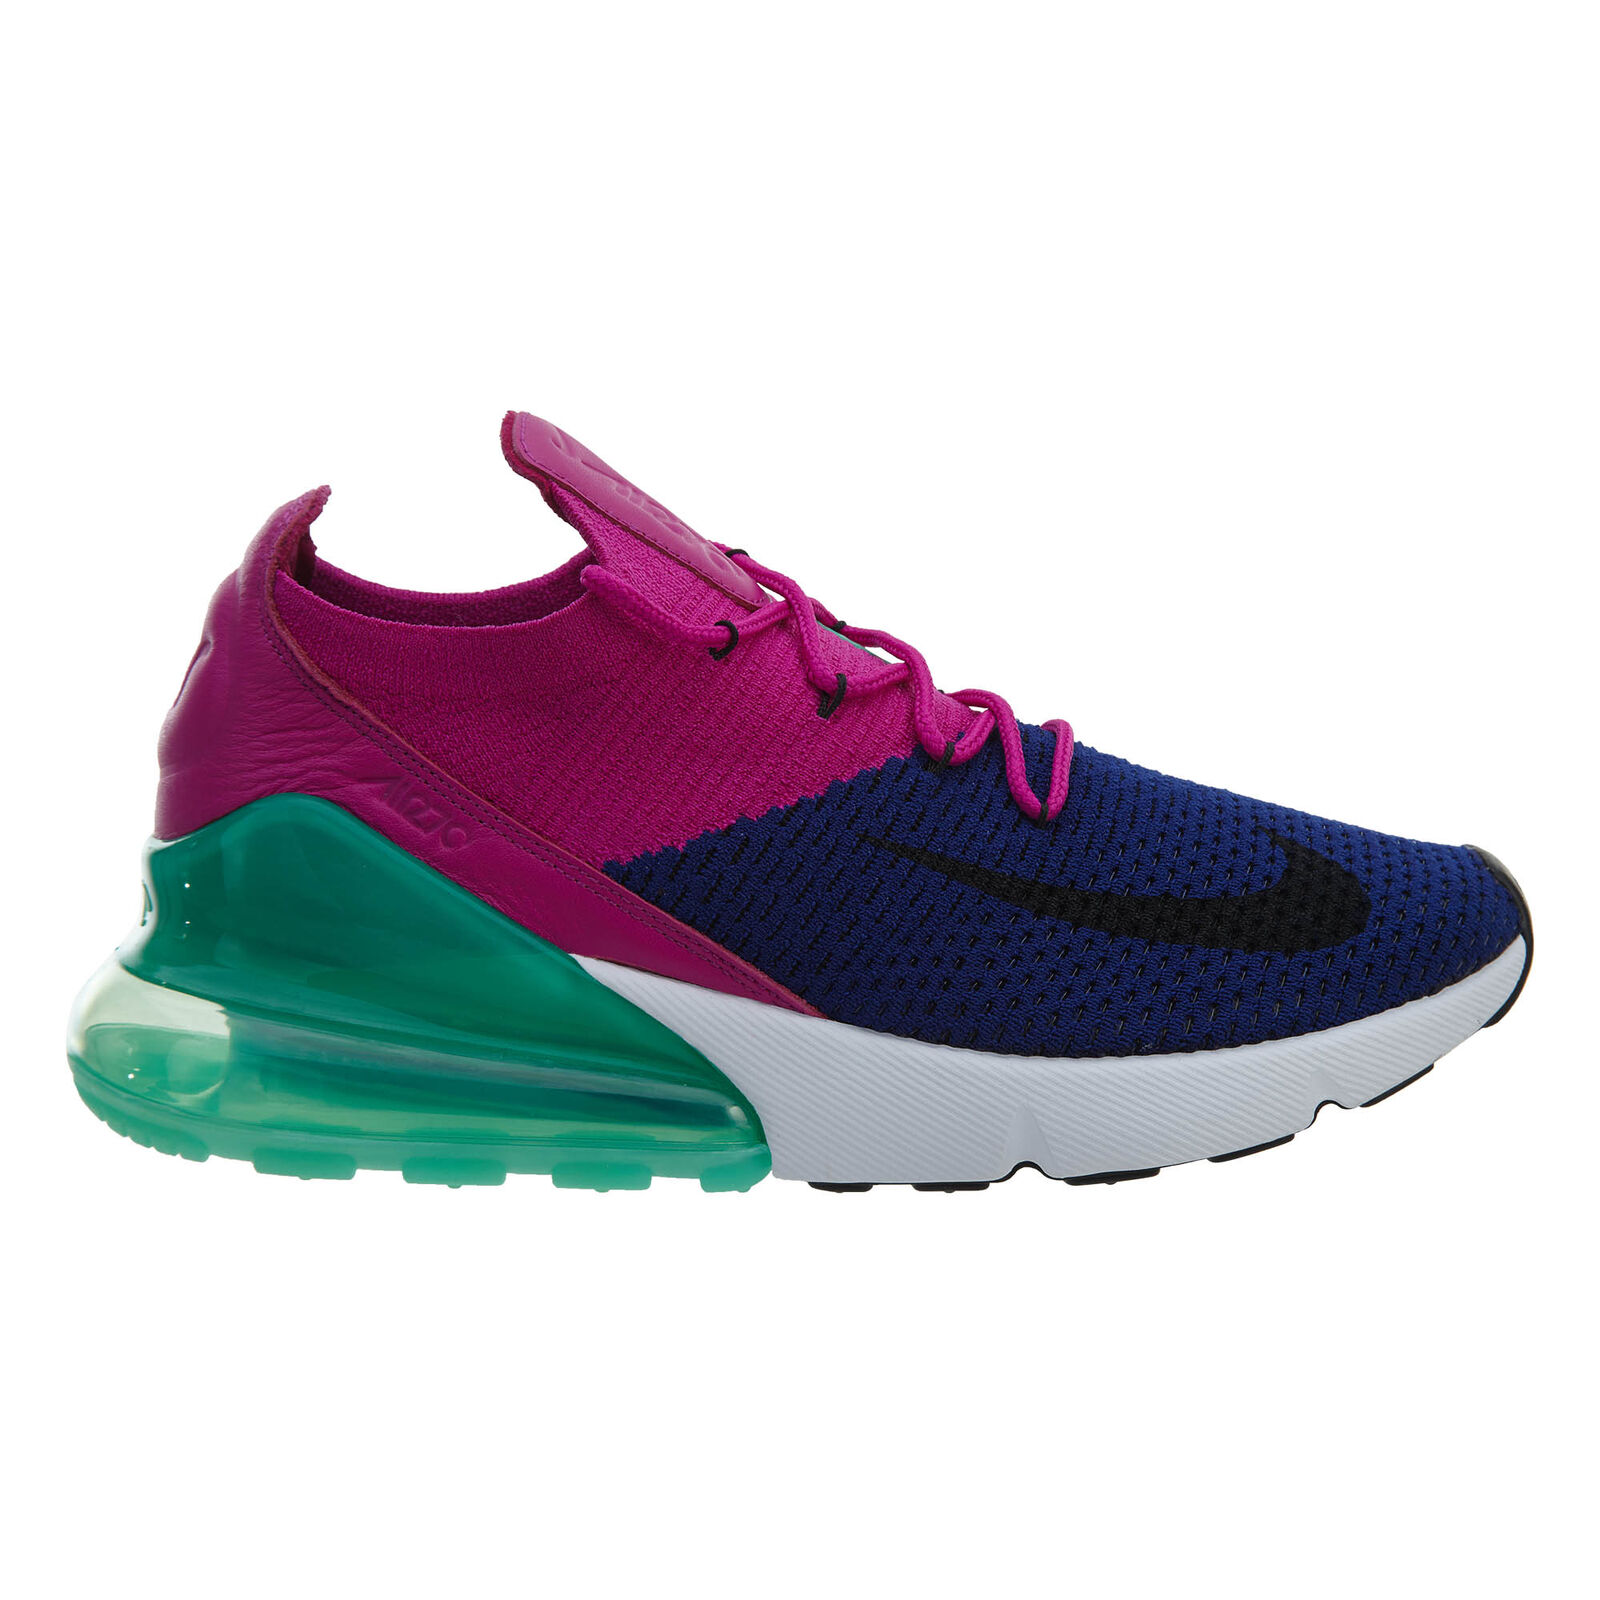 Nike Air Max 270 Flyknit Mens AO1023-401 Royal Fuchsia Running Shoes Size 12